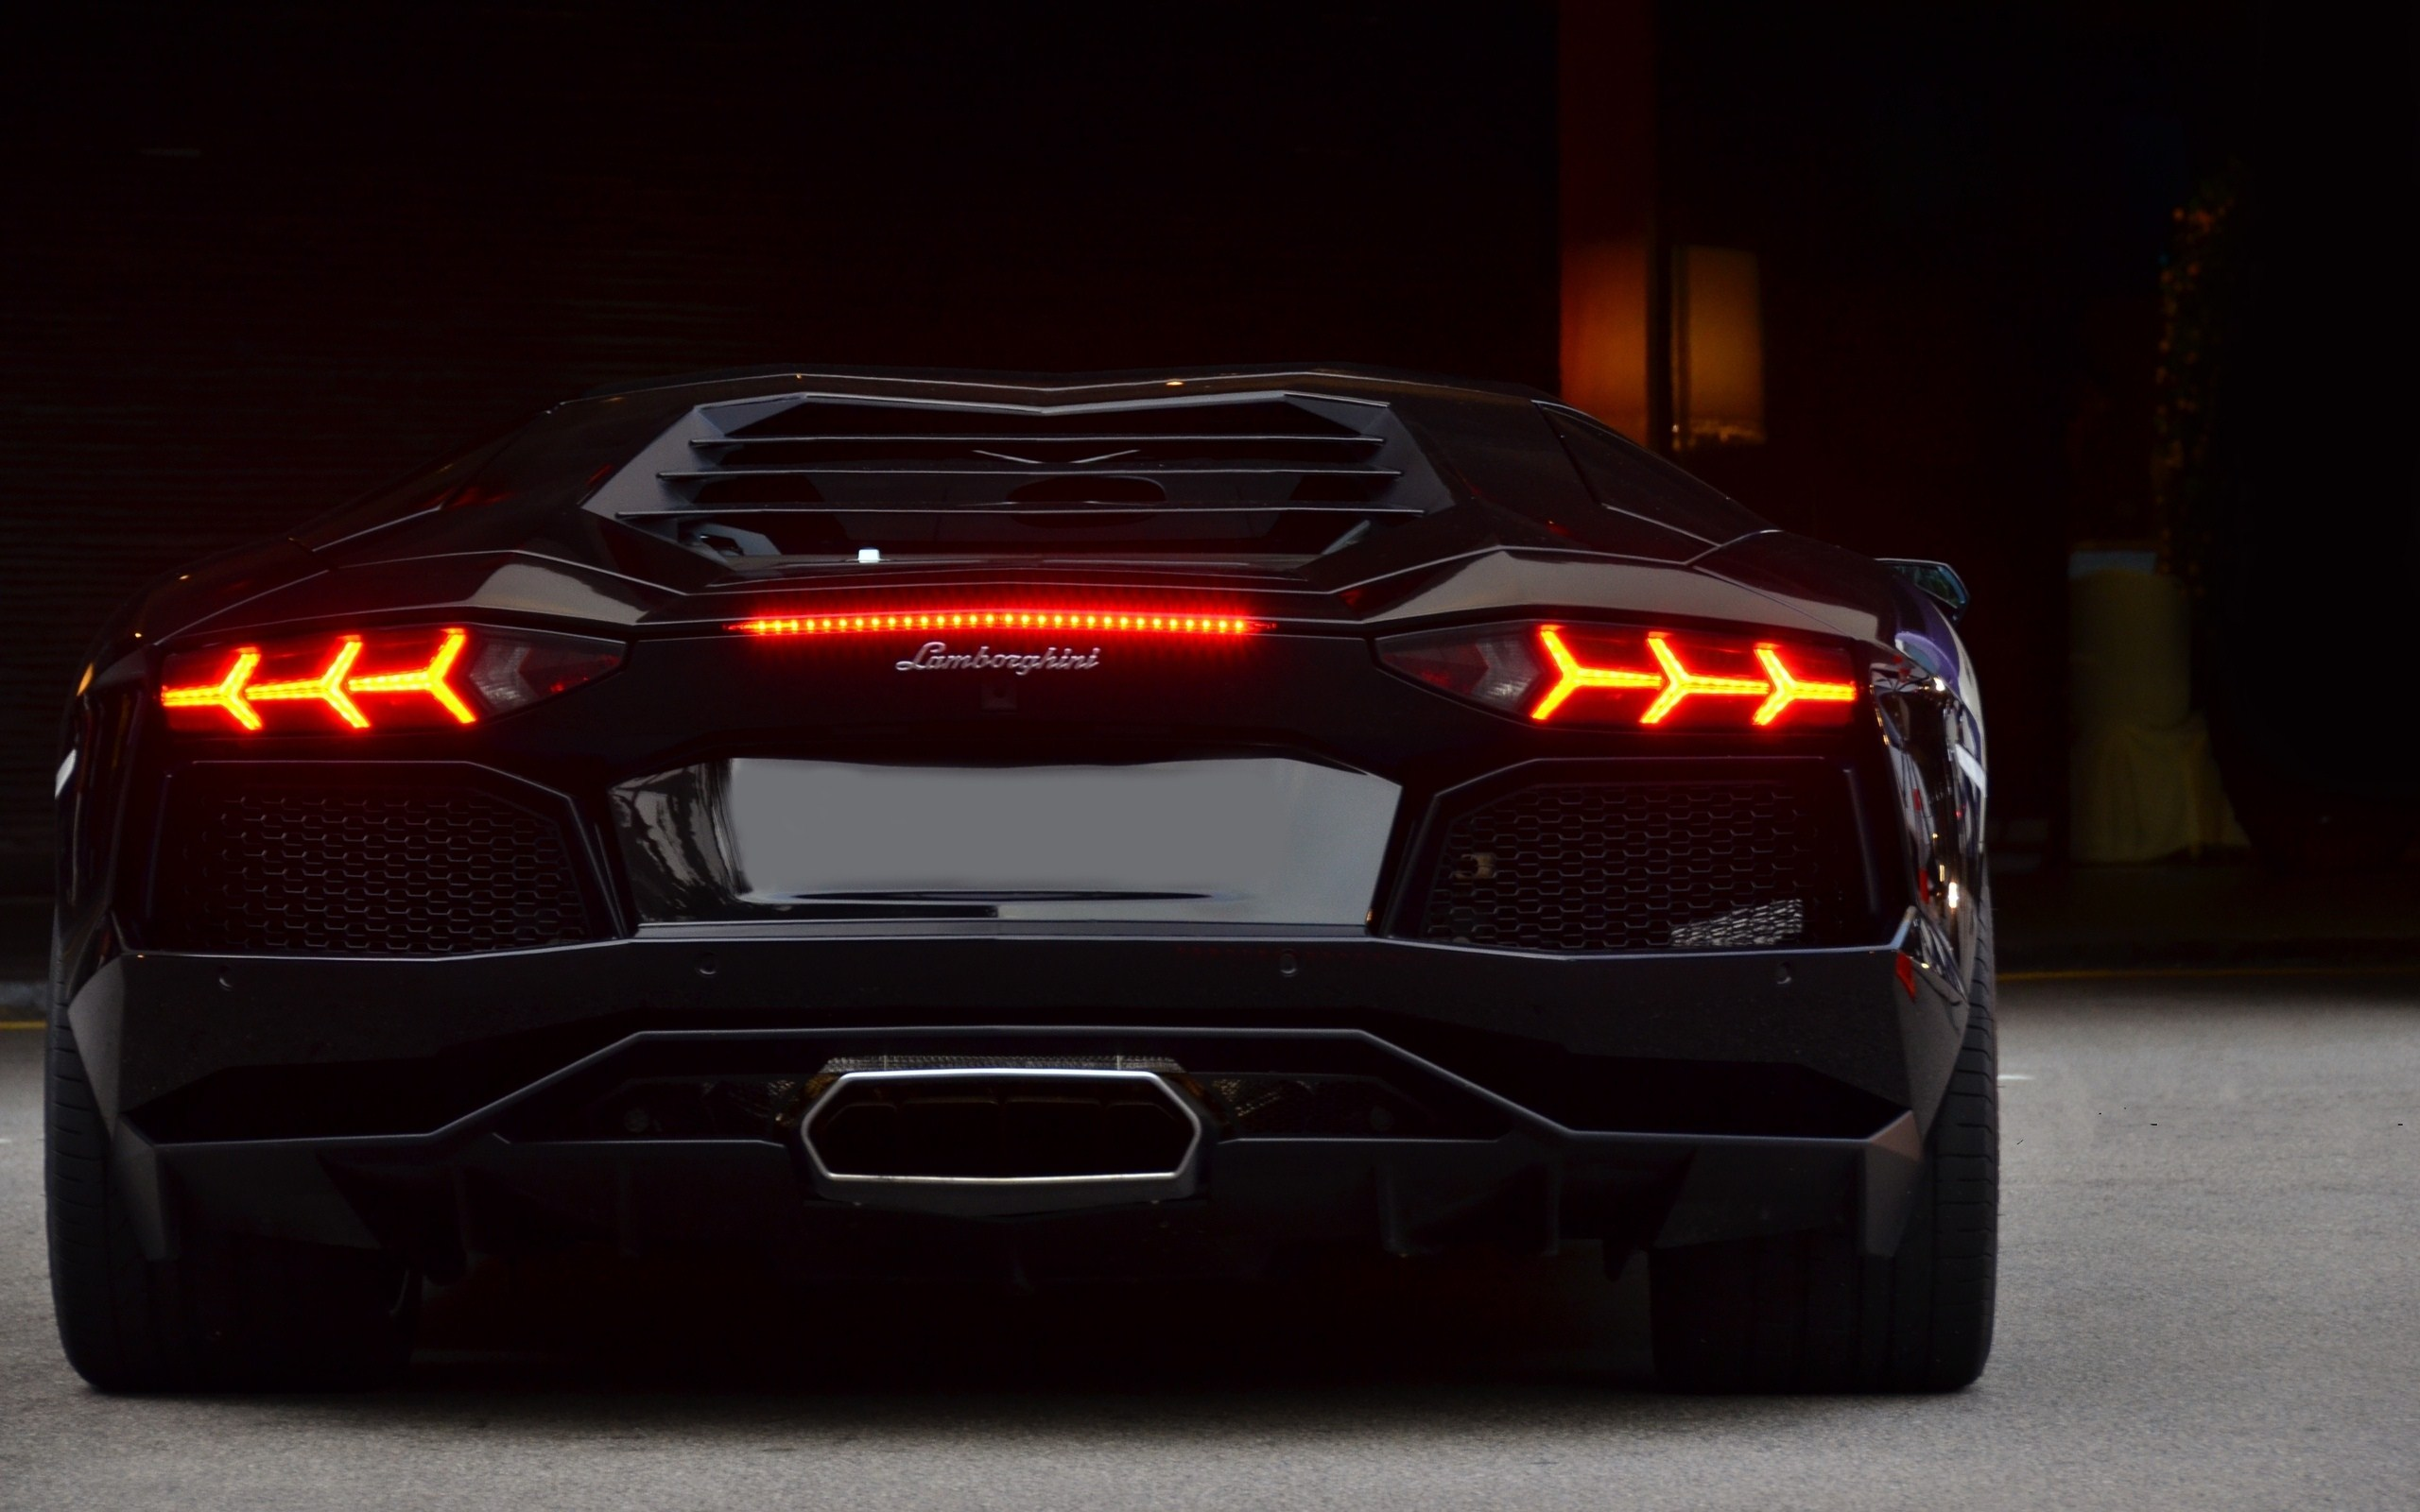 Cool Tail Lights Wallpaper